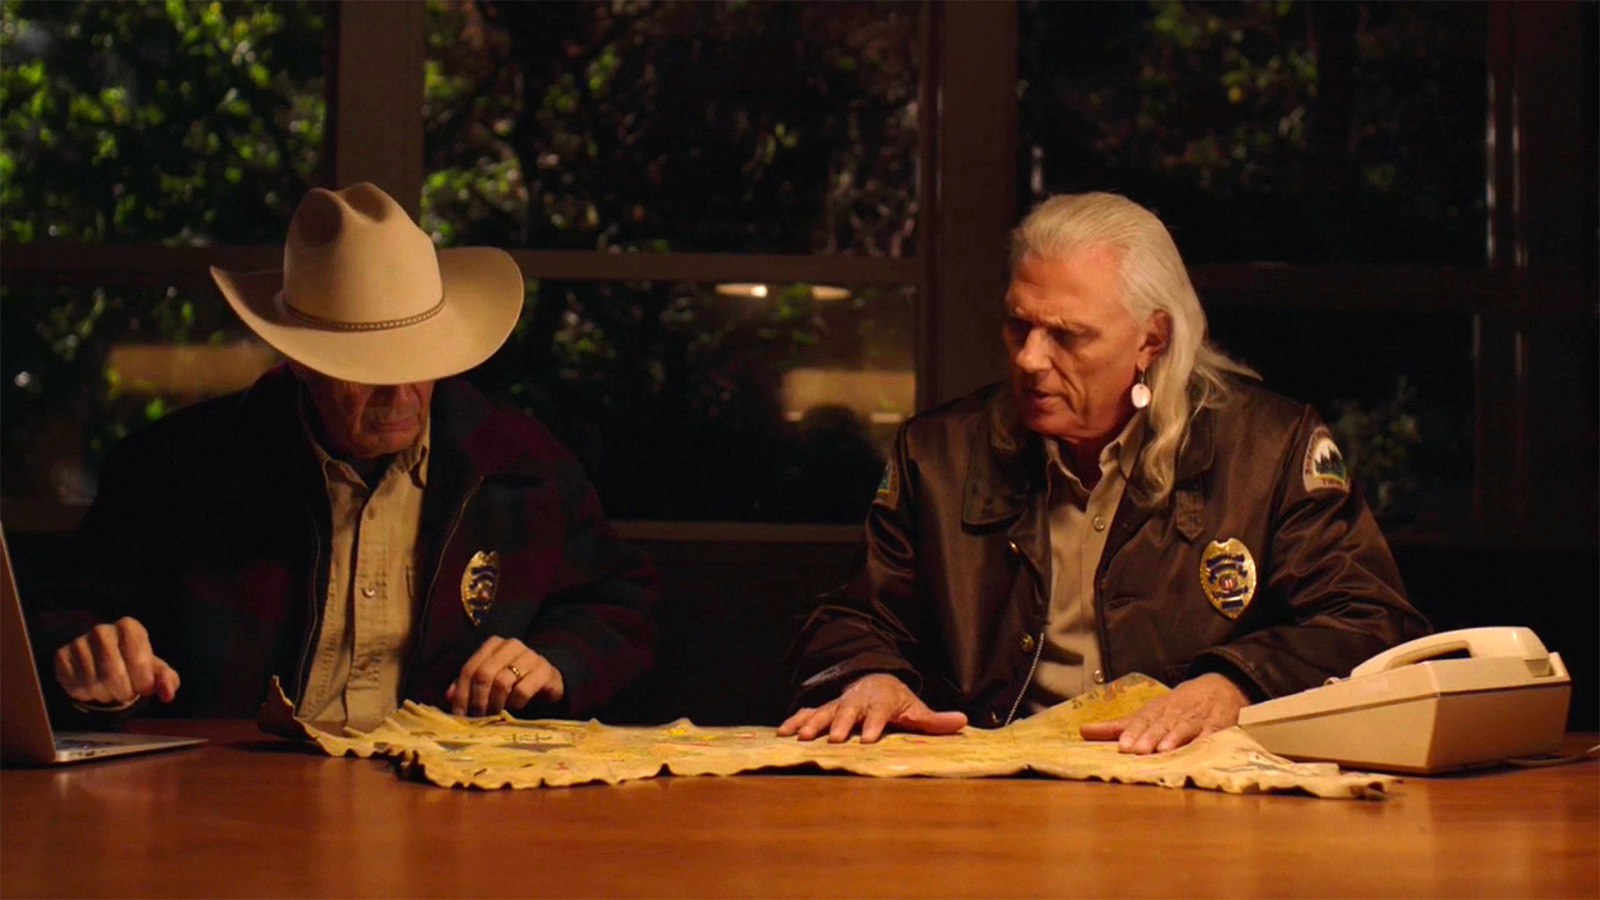 Screen grab from Twin Peaks showing Hawk and Truman looking at a map